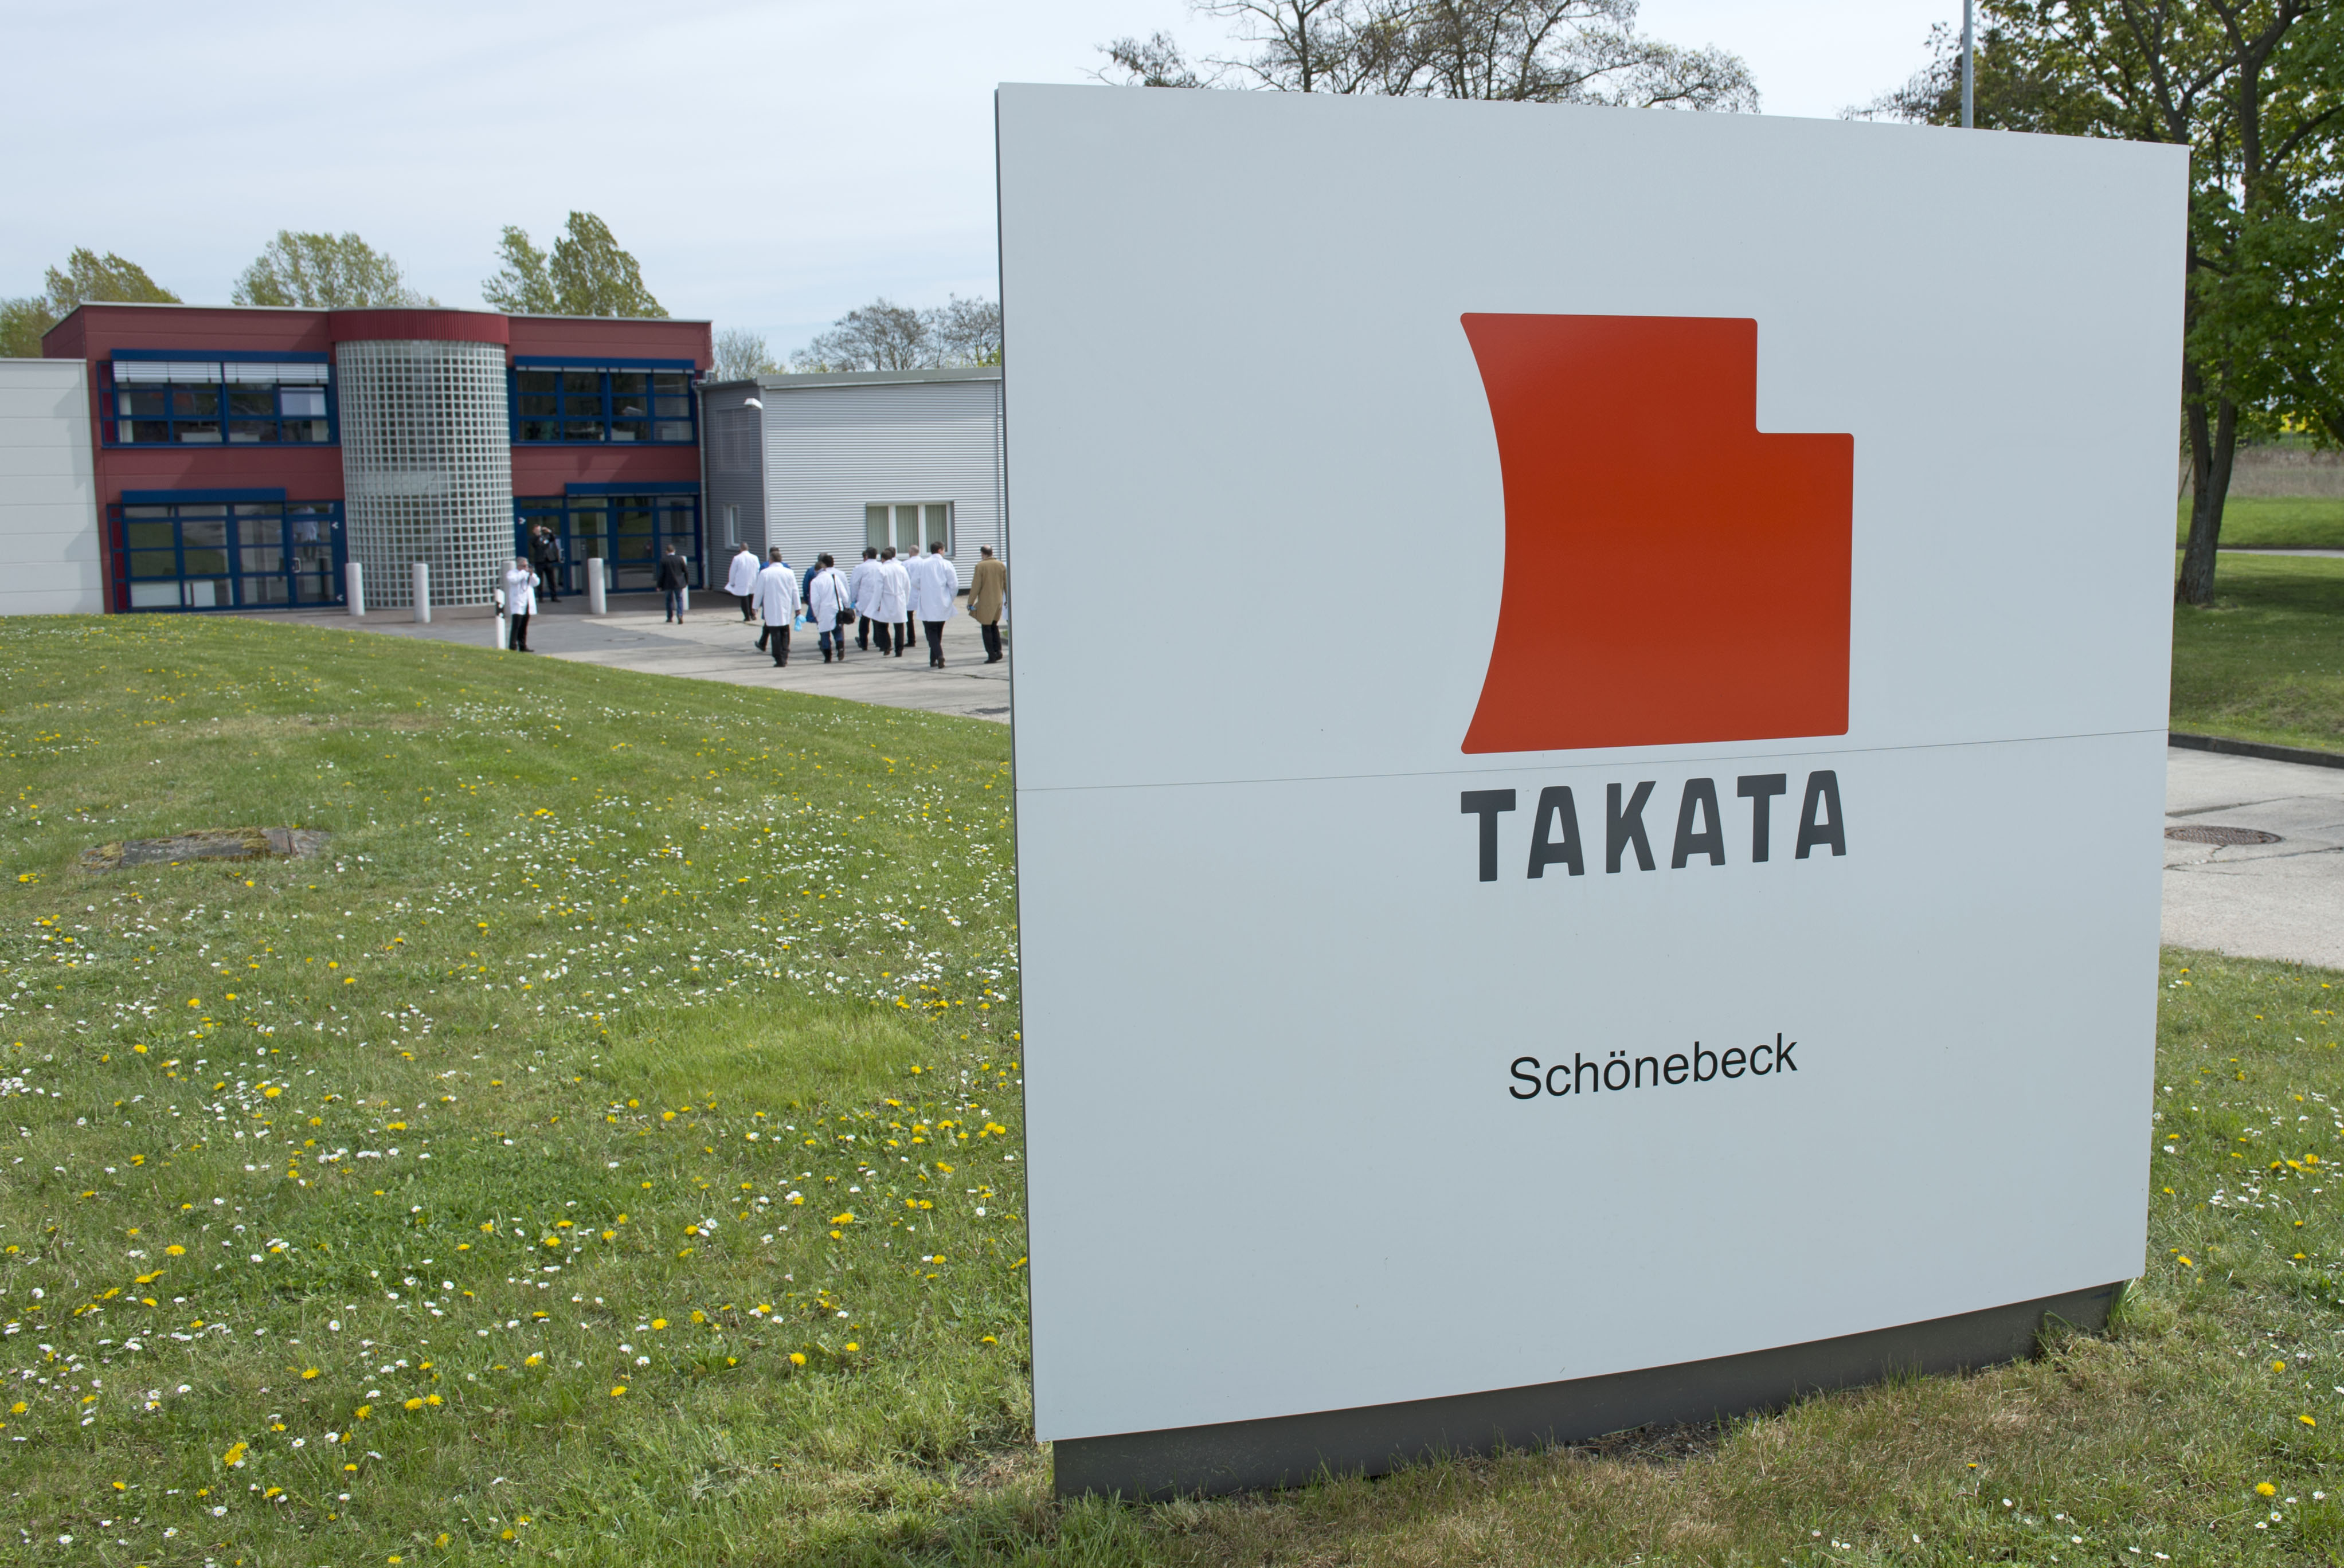 NHTSA threatens to act against Takata, air bag maker (AP Photo/Jens Meyer, File)